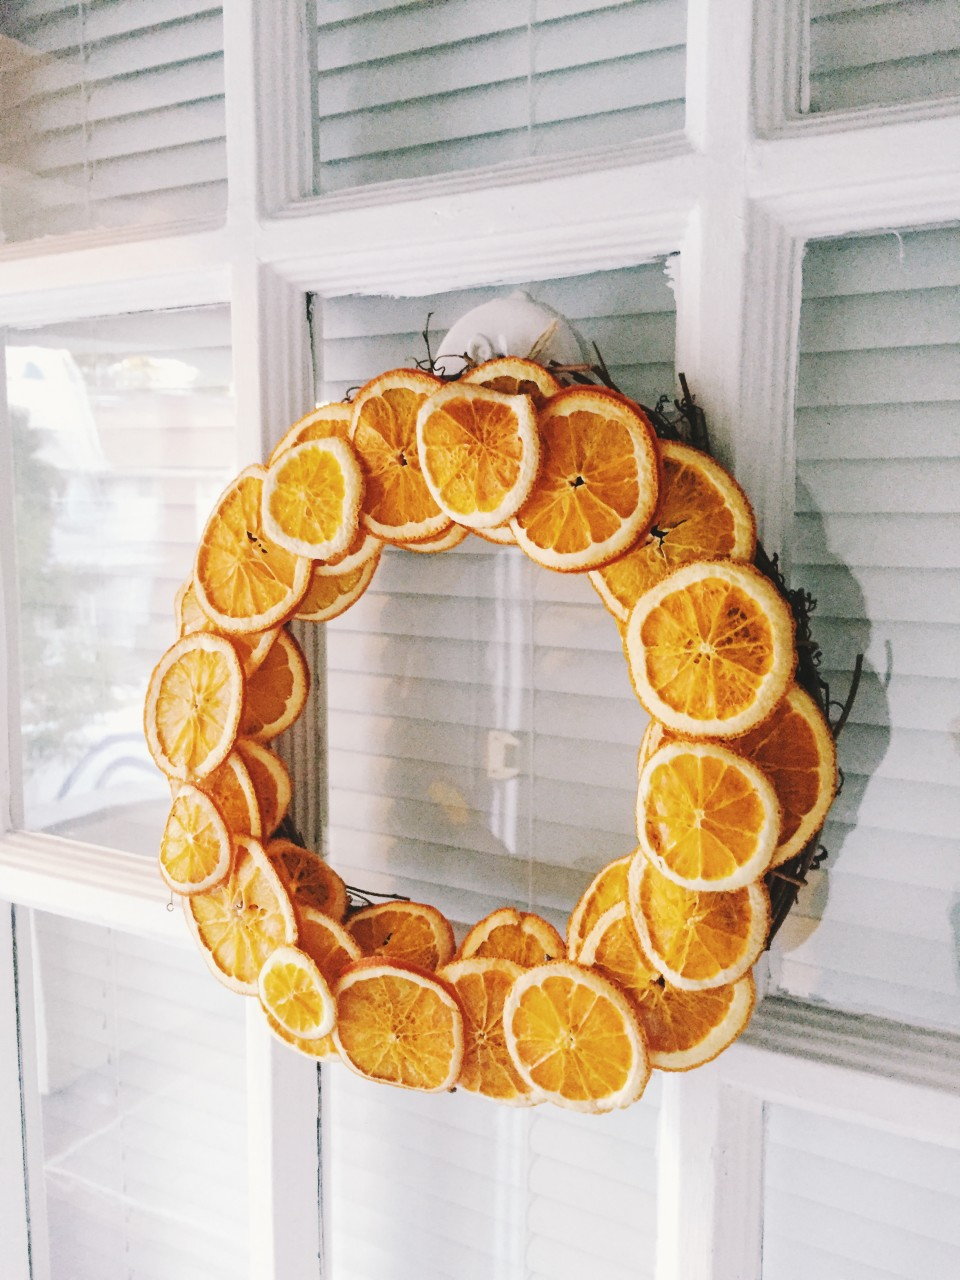 twine and table citrus wreath on the door